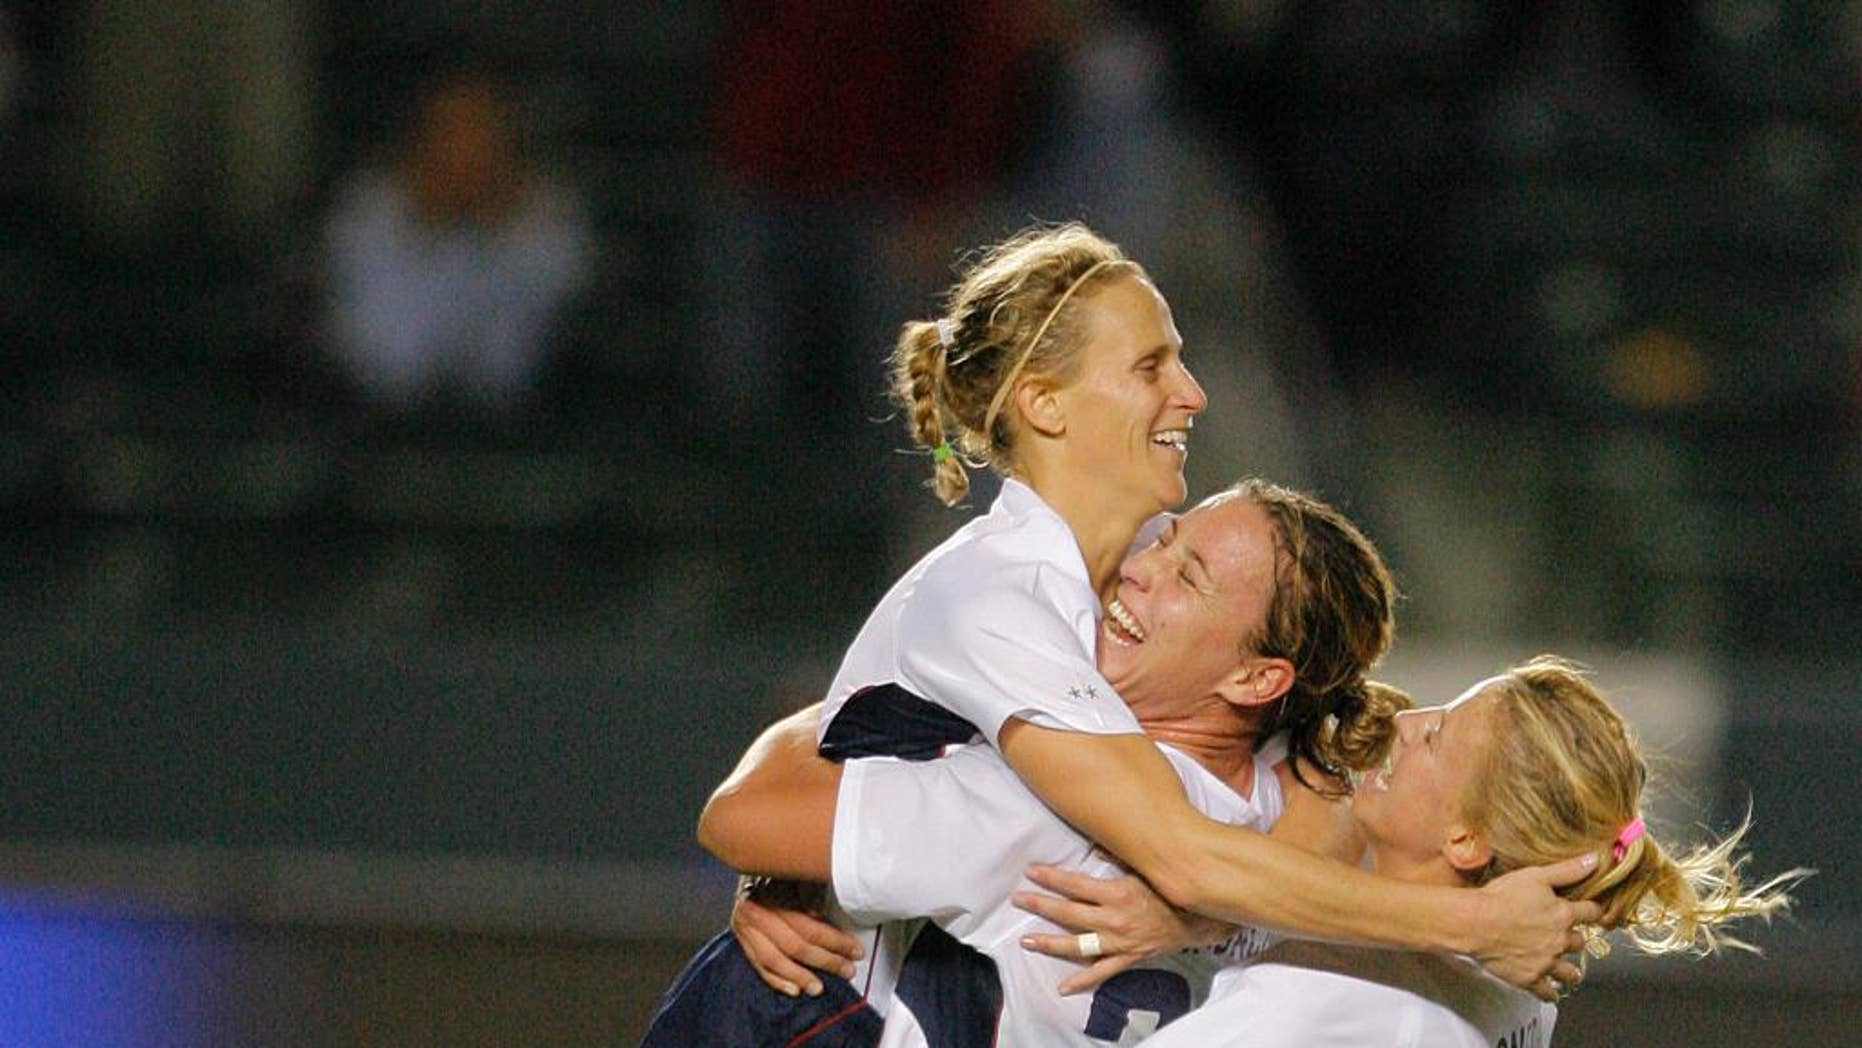 FILE - In this Nov. 26, 2006, file photo USA's Kristine Lilly, left, is congratulated by her teammates Abby Wambach, center, and Aly Wagner after Lilly made a game-winning penalty kick against Canada to win the championship in their CONCACAF Gold Cup soccer match in Carson, Calif. A day after her former team faces England in an exhibition, Lilly will be inducted into the National Soccer Hall of Fame. (AP Photo/Jae C. Hong, File)